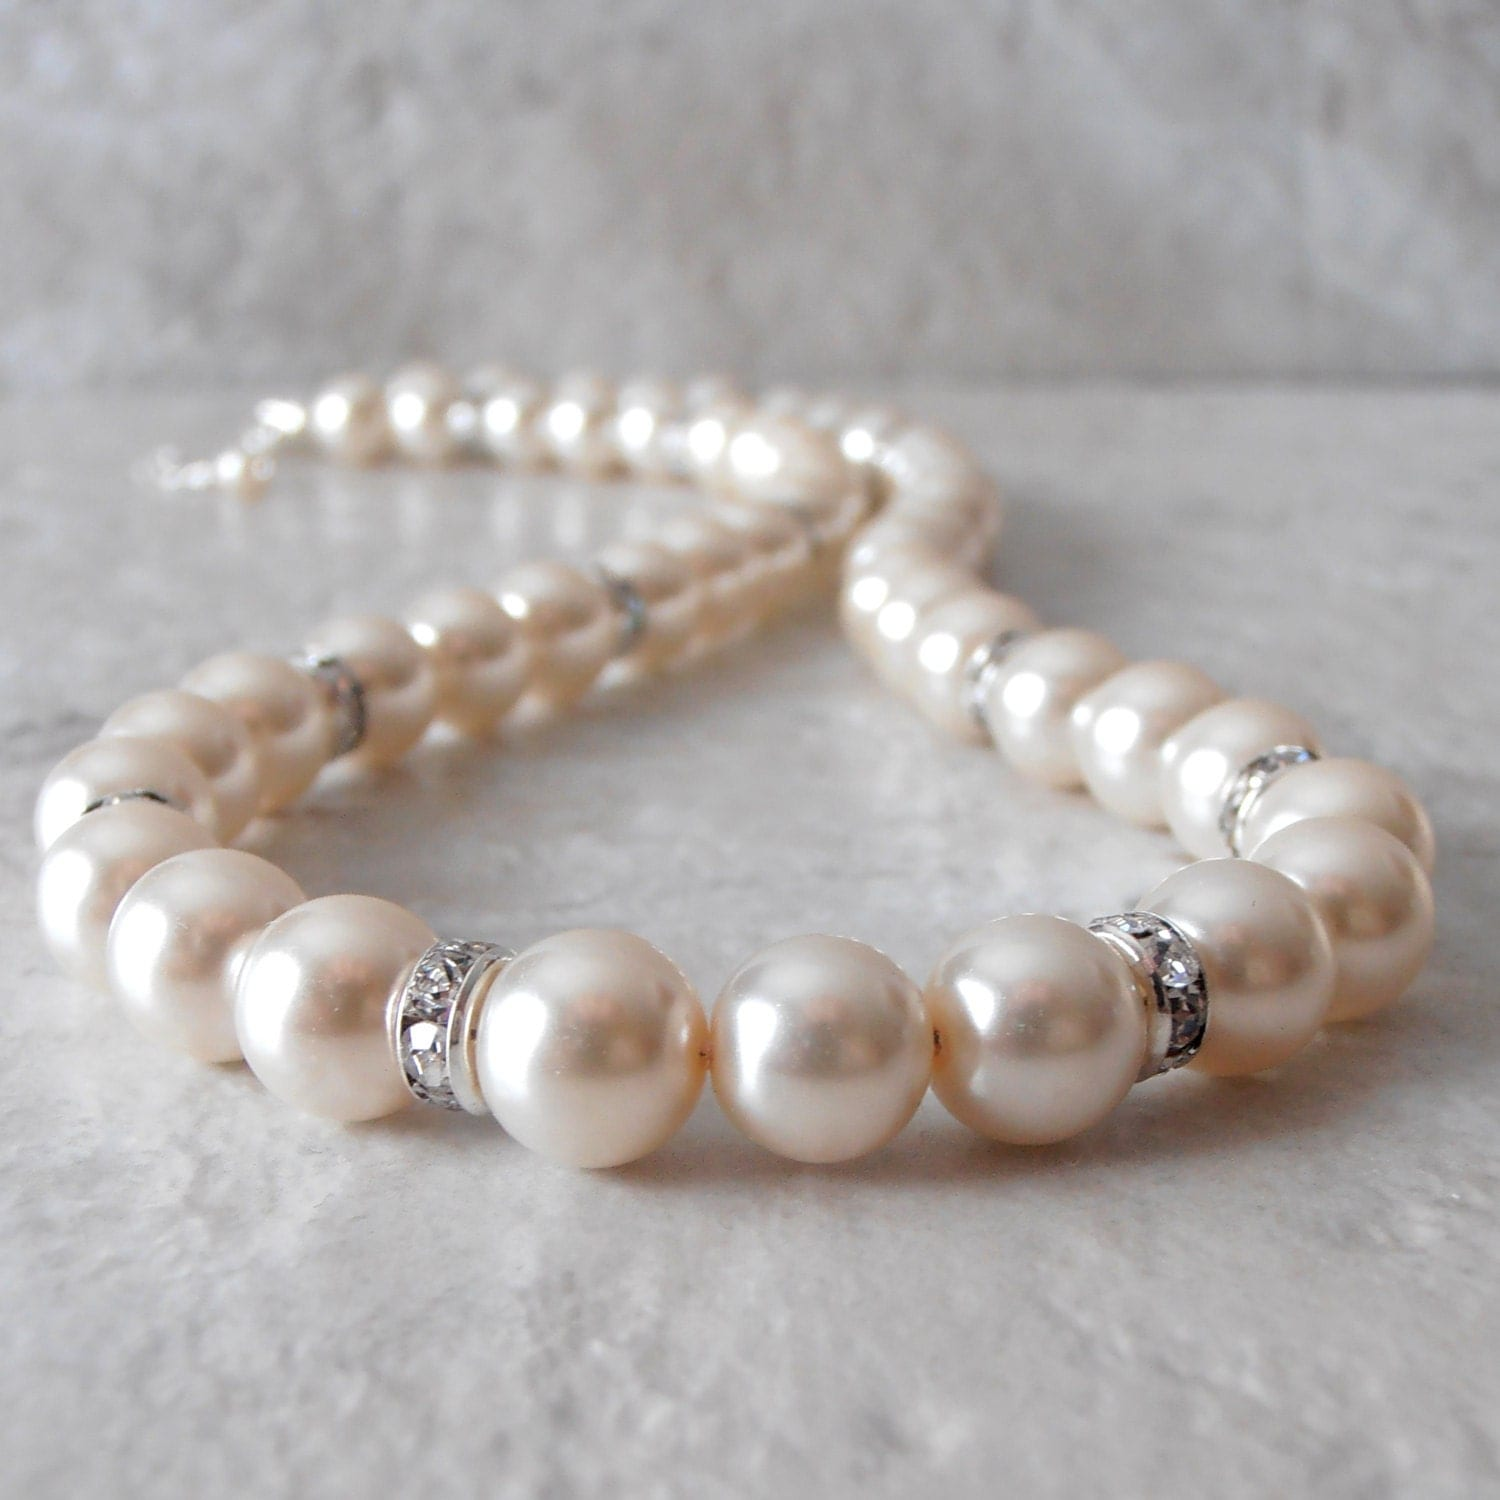 Ivory Pearl Necklace Pearl Wedding Jewelry Faux By. Attack On Titan Necklace. Final Fantasy Necklace. Cremation Necklace. Modeling Clay Necklace. Crane Necklace. Otodus Necklace. Thick Necklace. Matching Necklace